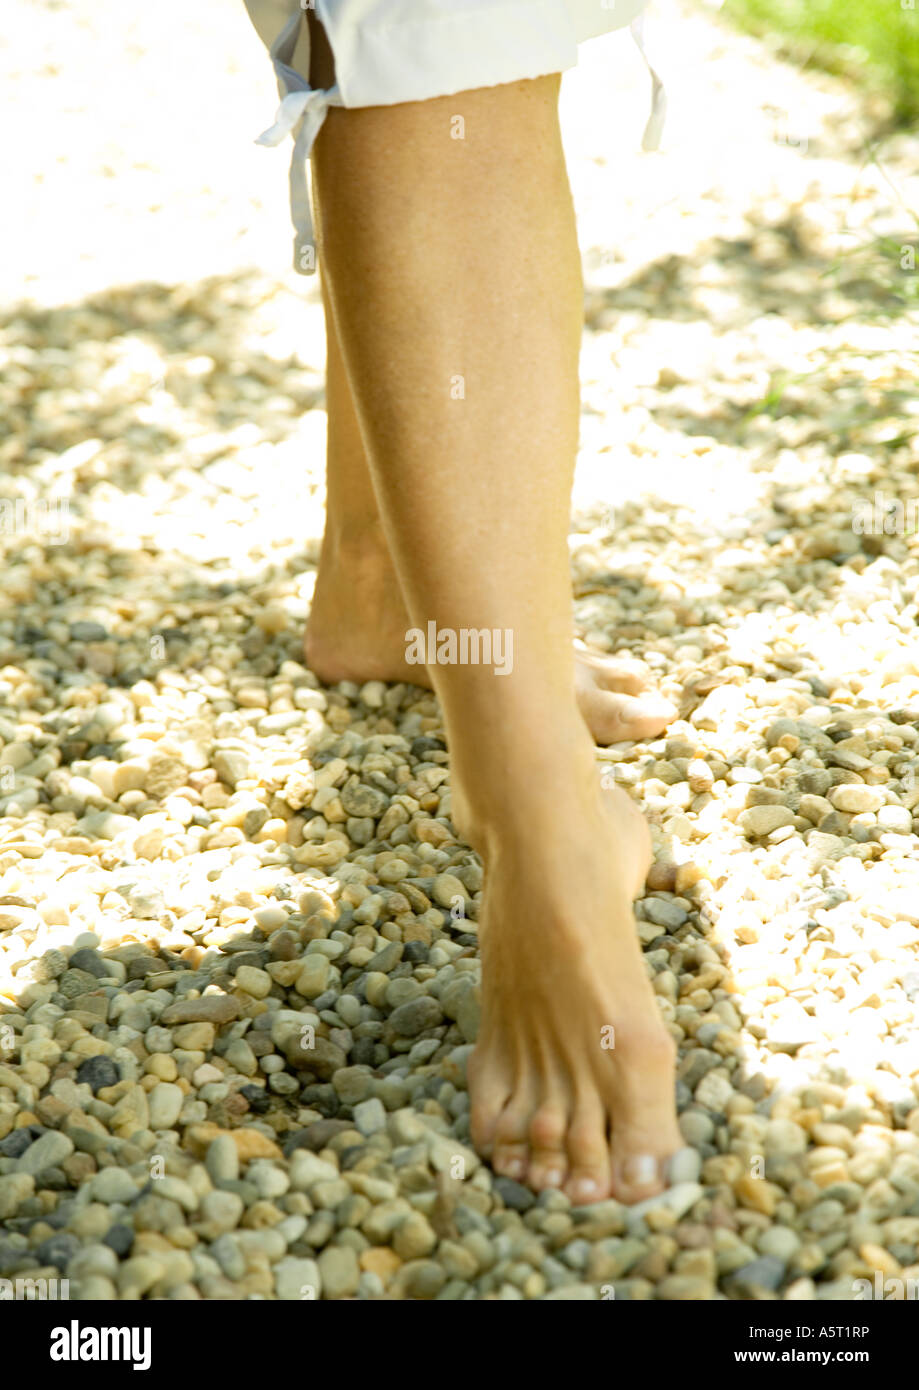 Woman taking step, barefoot on gravel, knee down - Stock Image